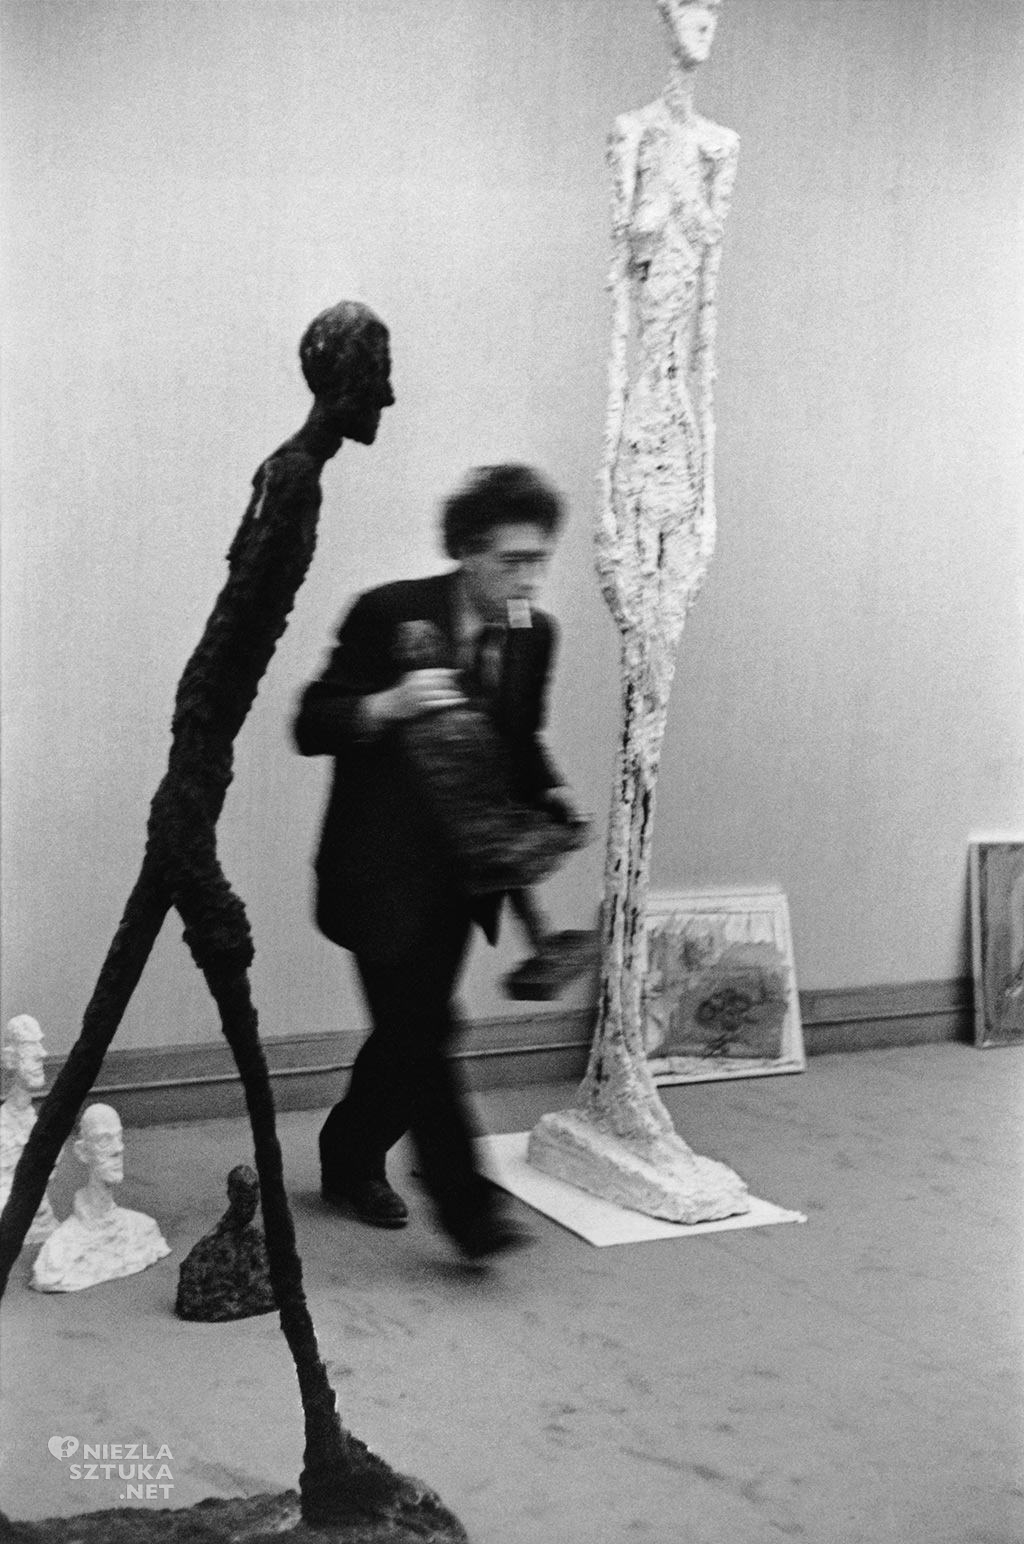 Henri Cartier-Bresson, Alberto Giacometti, Maeght Gallery, Paris, 1961 © Henri Cartier-Bresson